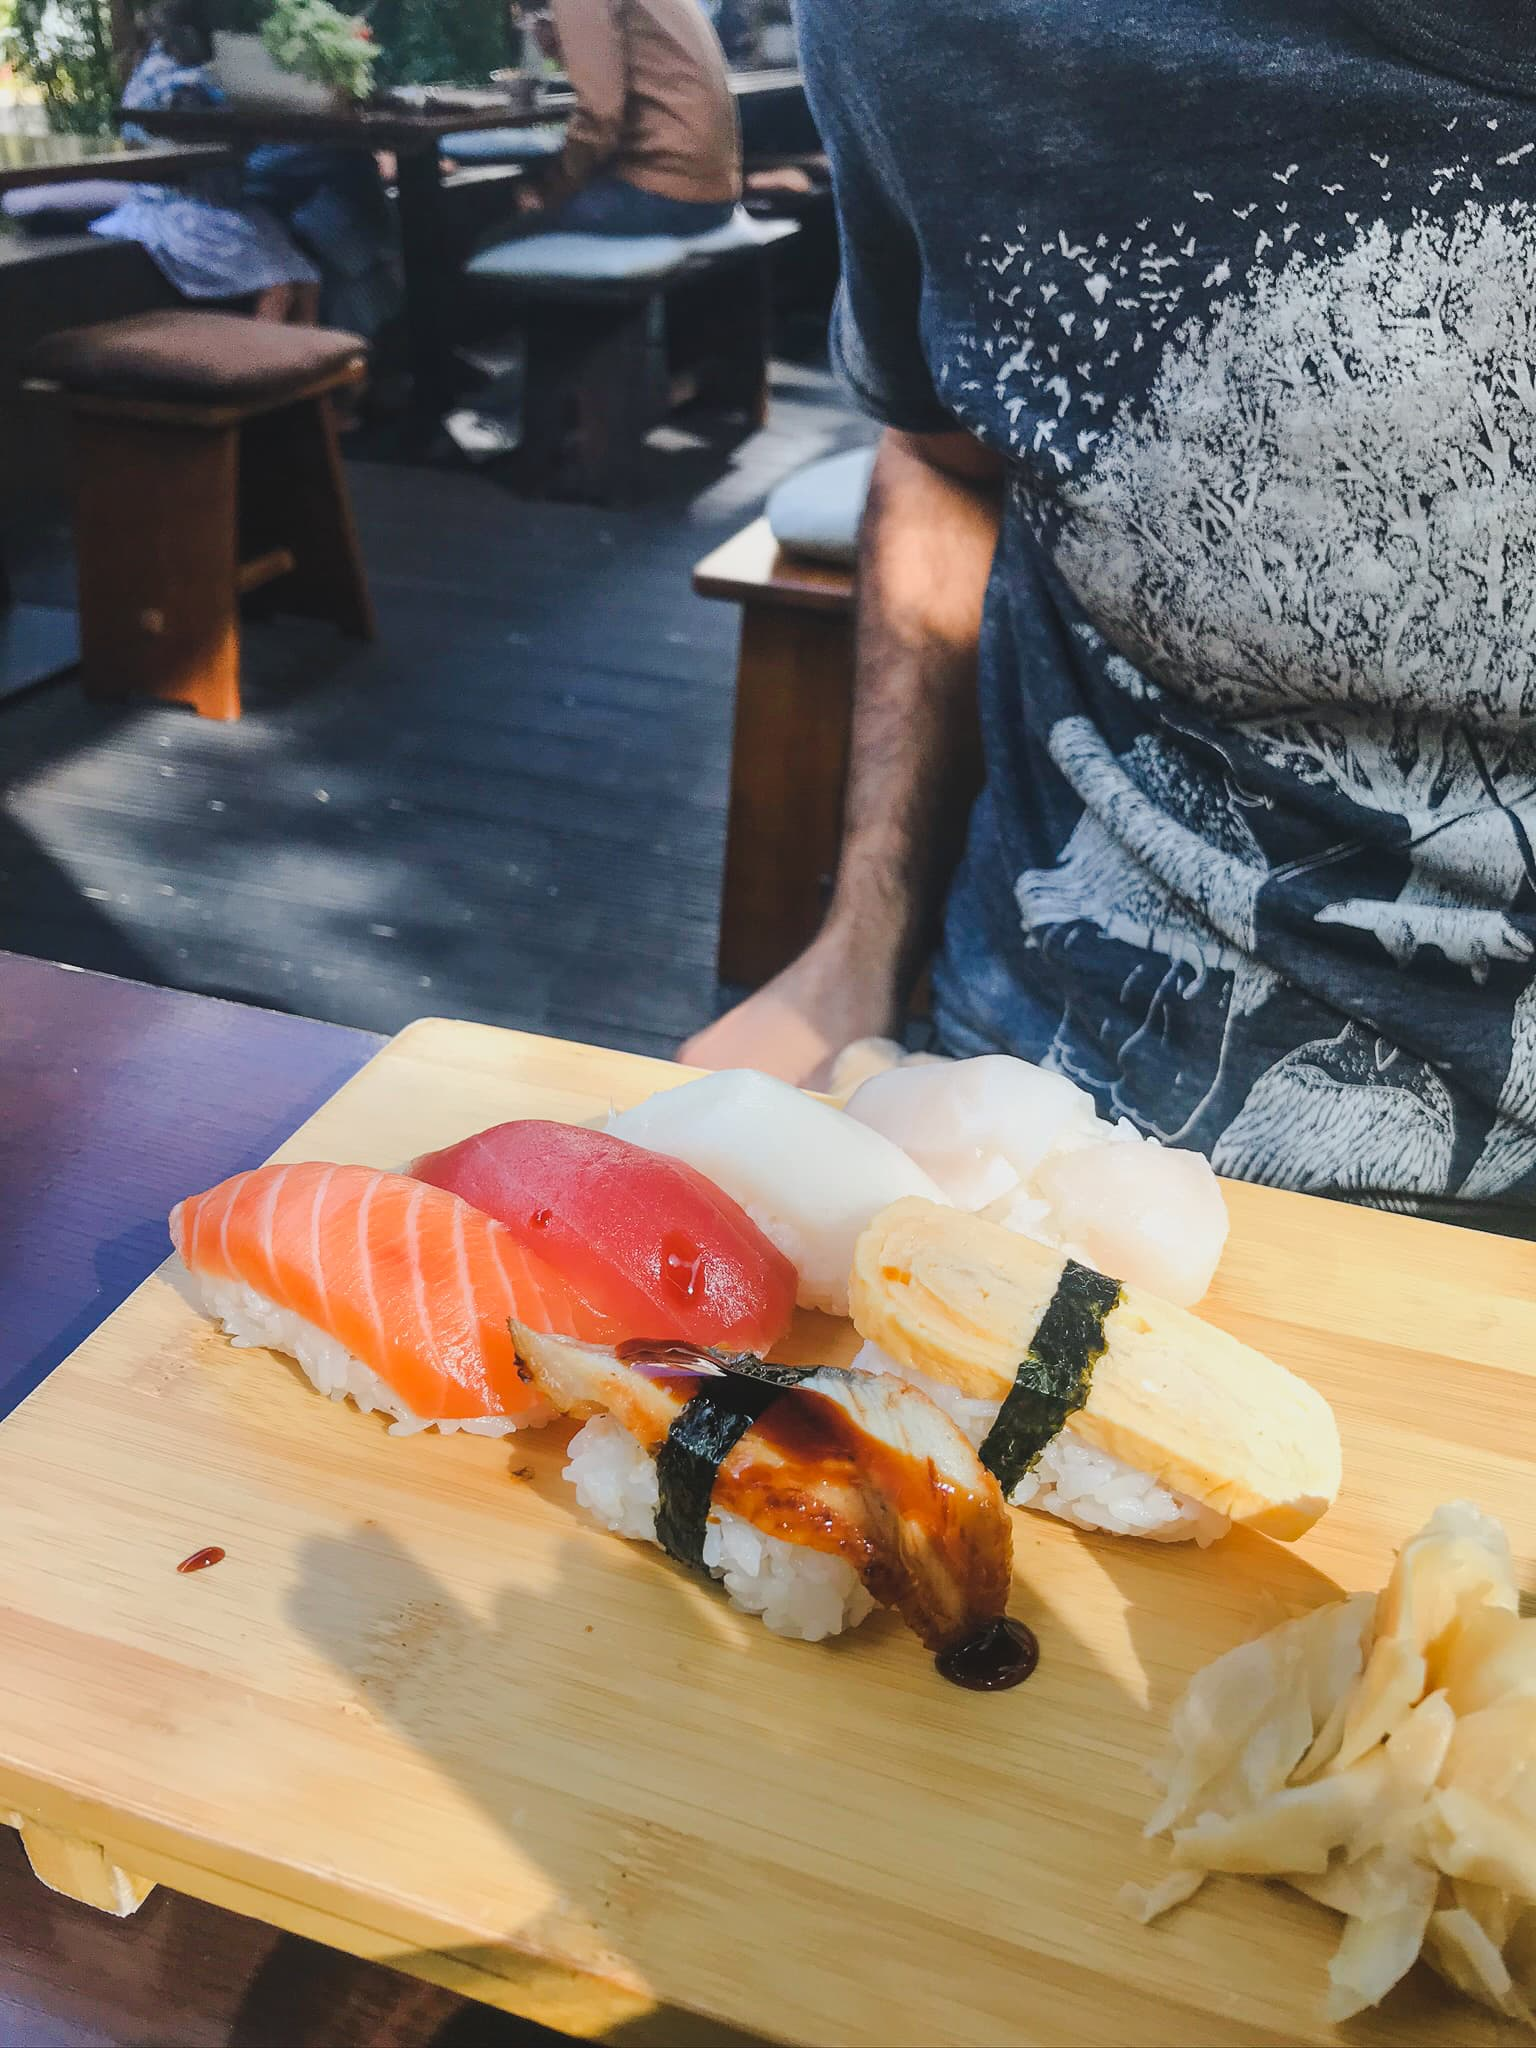 Aiko is the best sushi restaurant to eat in Berlin that offers quality sushi in an authentic Japanese setting